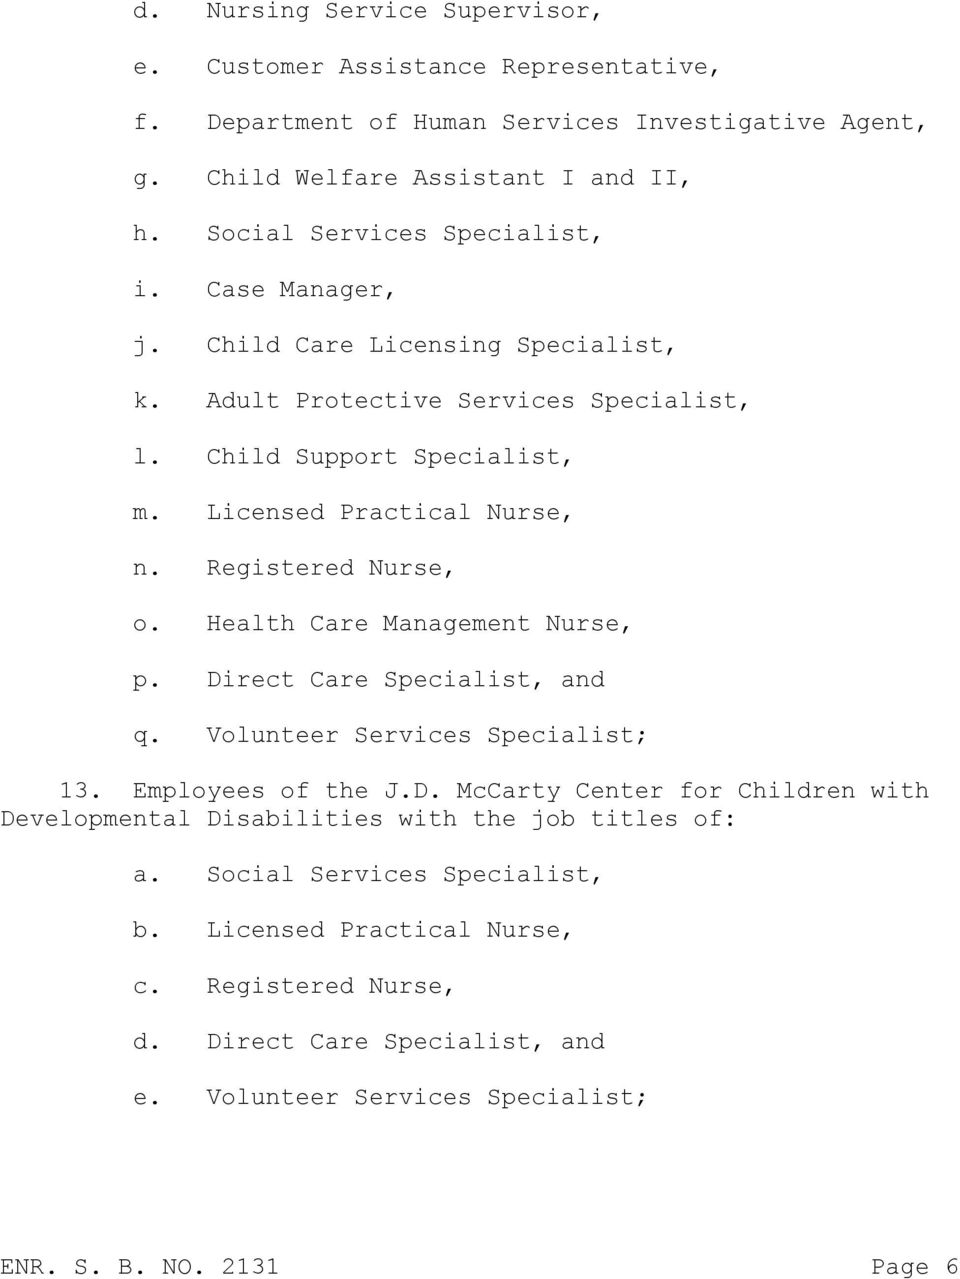 Registered Nurse, o. Health Care Management Nurse, p. Direct Care Specialist, and q. Volunteer Services Specialist; 13. Employees of the J.D. McCarty Center for Children with Developmental Disabilities with the job titles of: a.